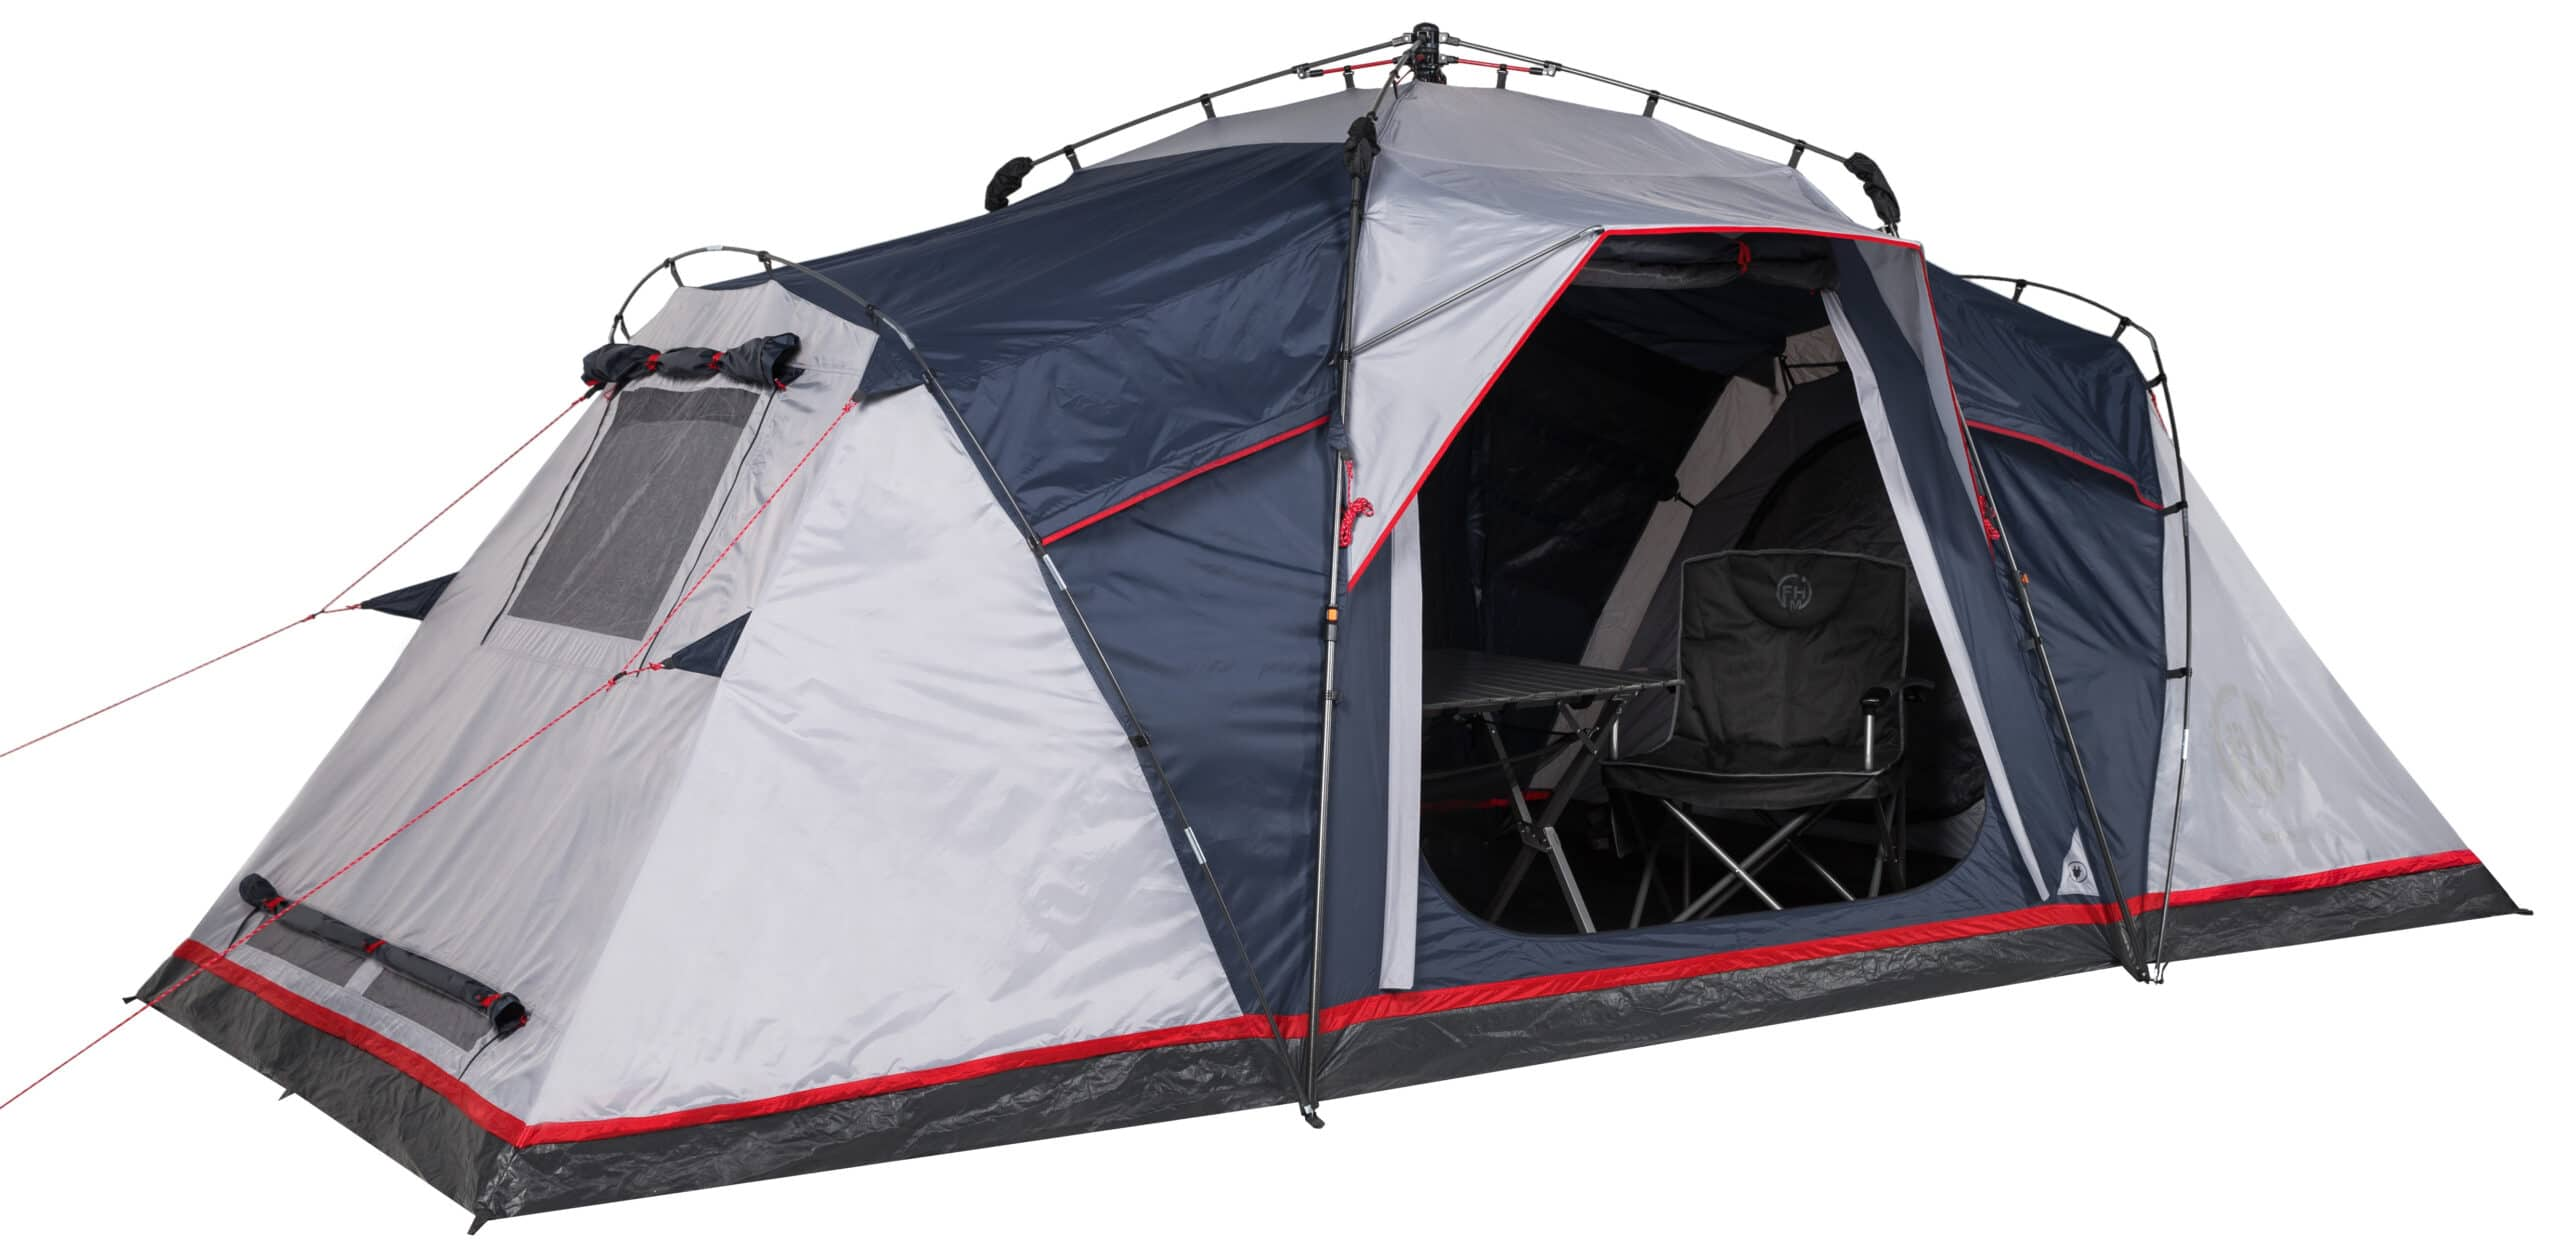 Antares 4 FHM Semi-automatic camping tent